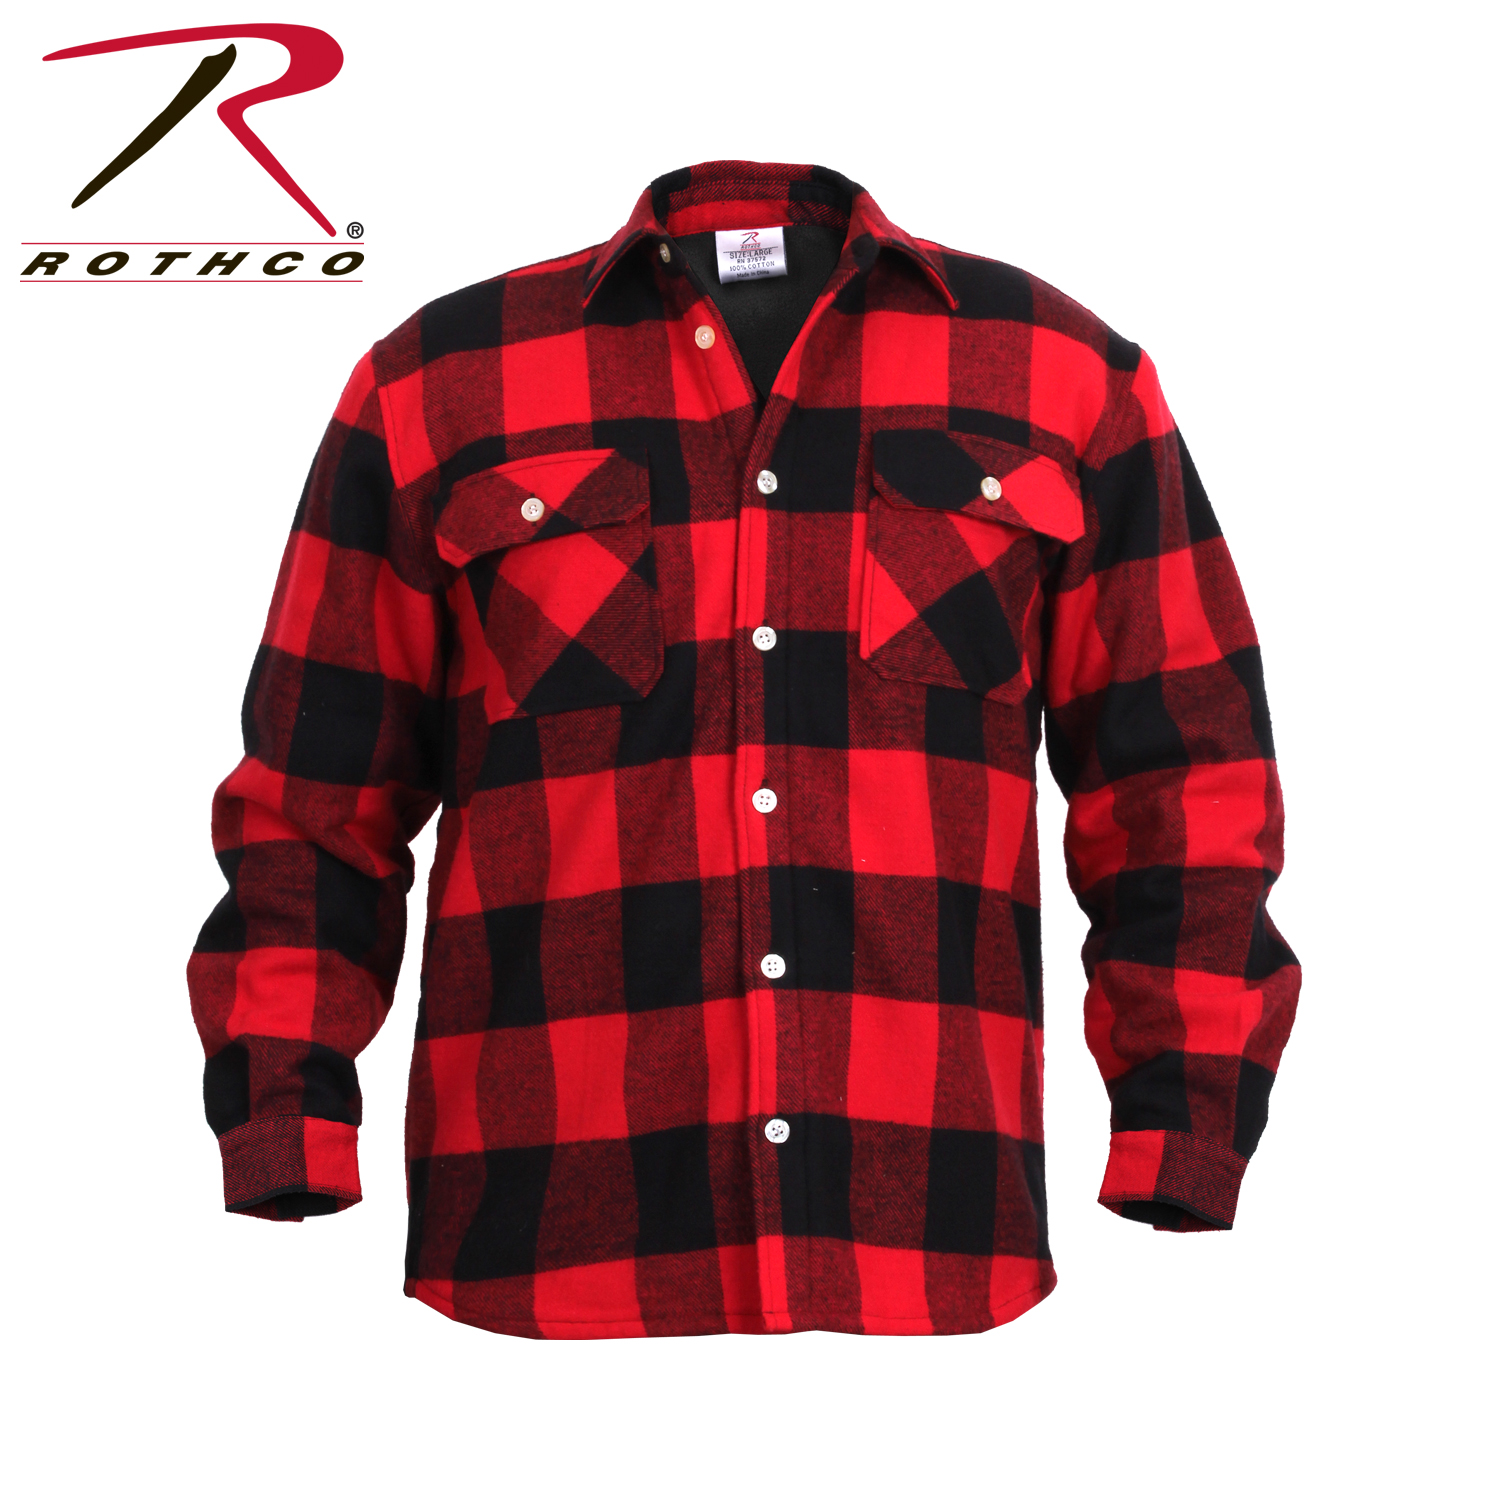 Bettwäsche Flanell Fleece Rothco 2739 Fleece Lined Flannel Shirt Red Plaid Ebay